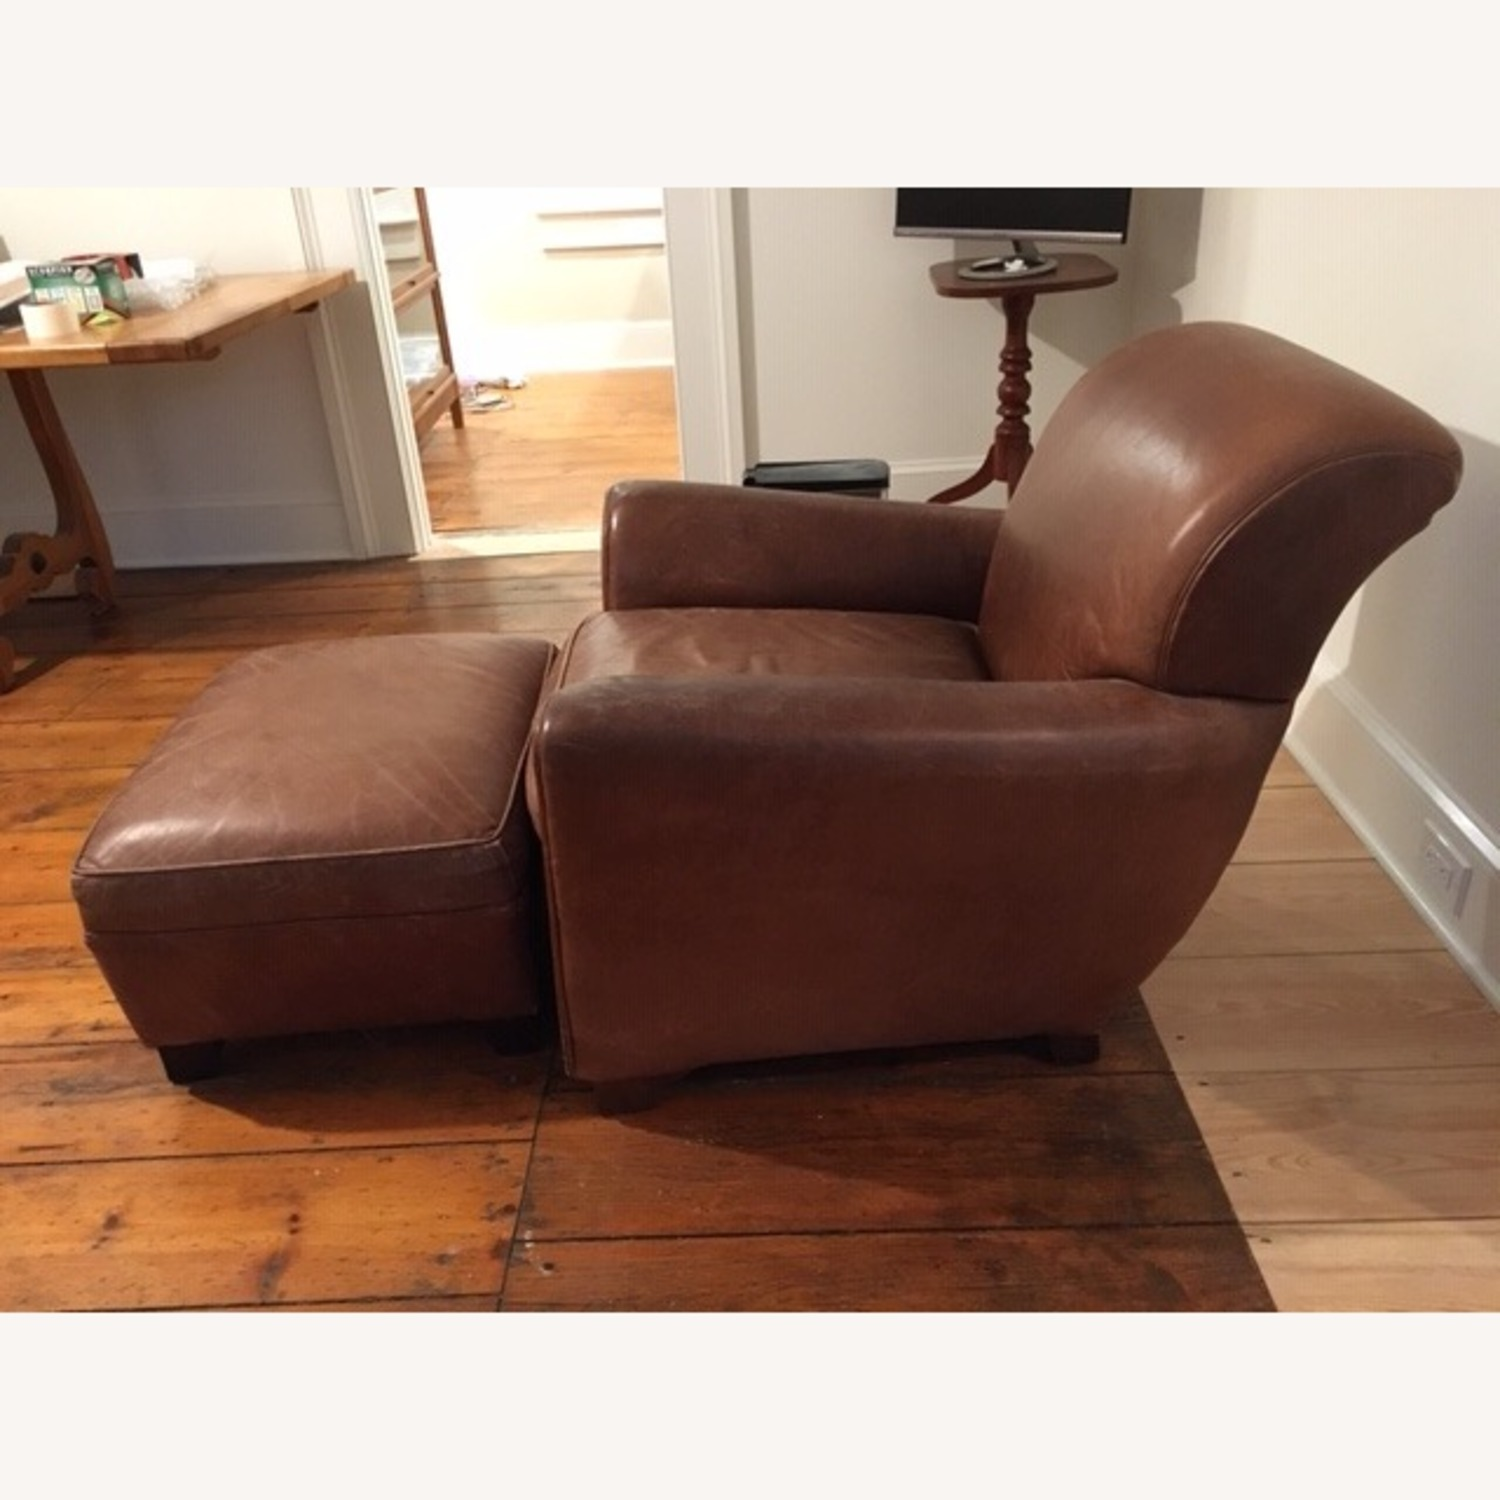 Pottery Barn Vintage Leather Club Chair and Ottoman - image-2